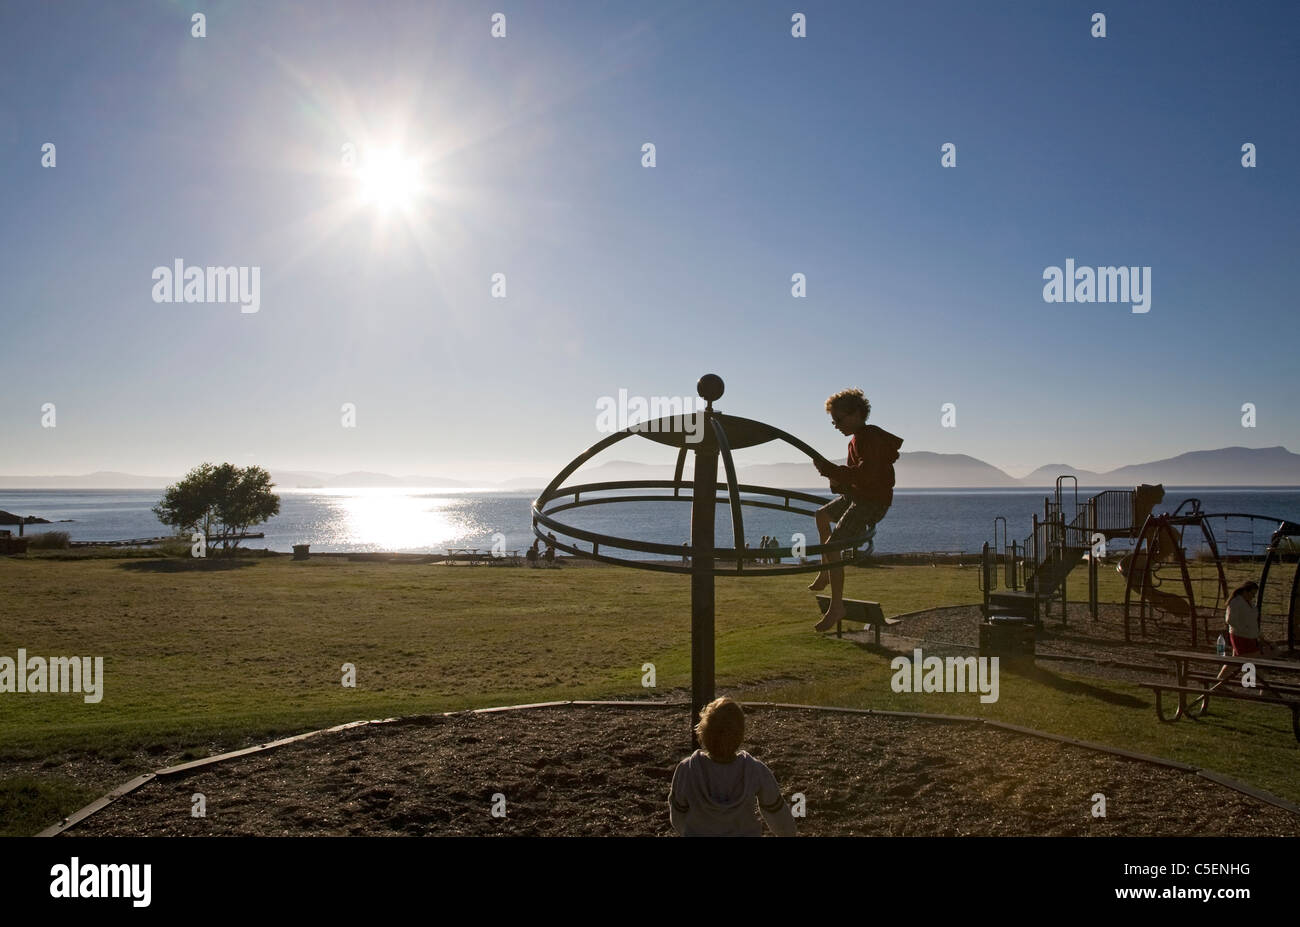 Two boys on a swing in a community park playground, Washington coast. - Stock Image